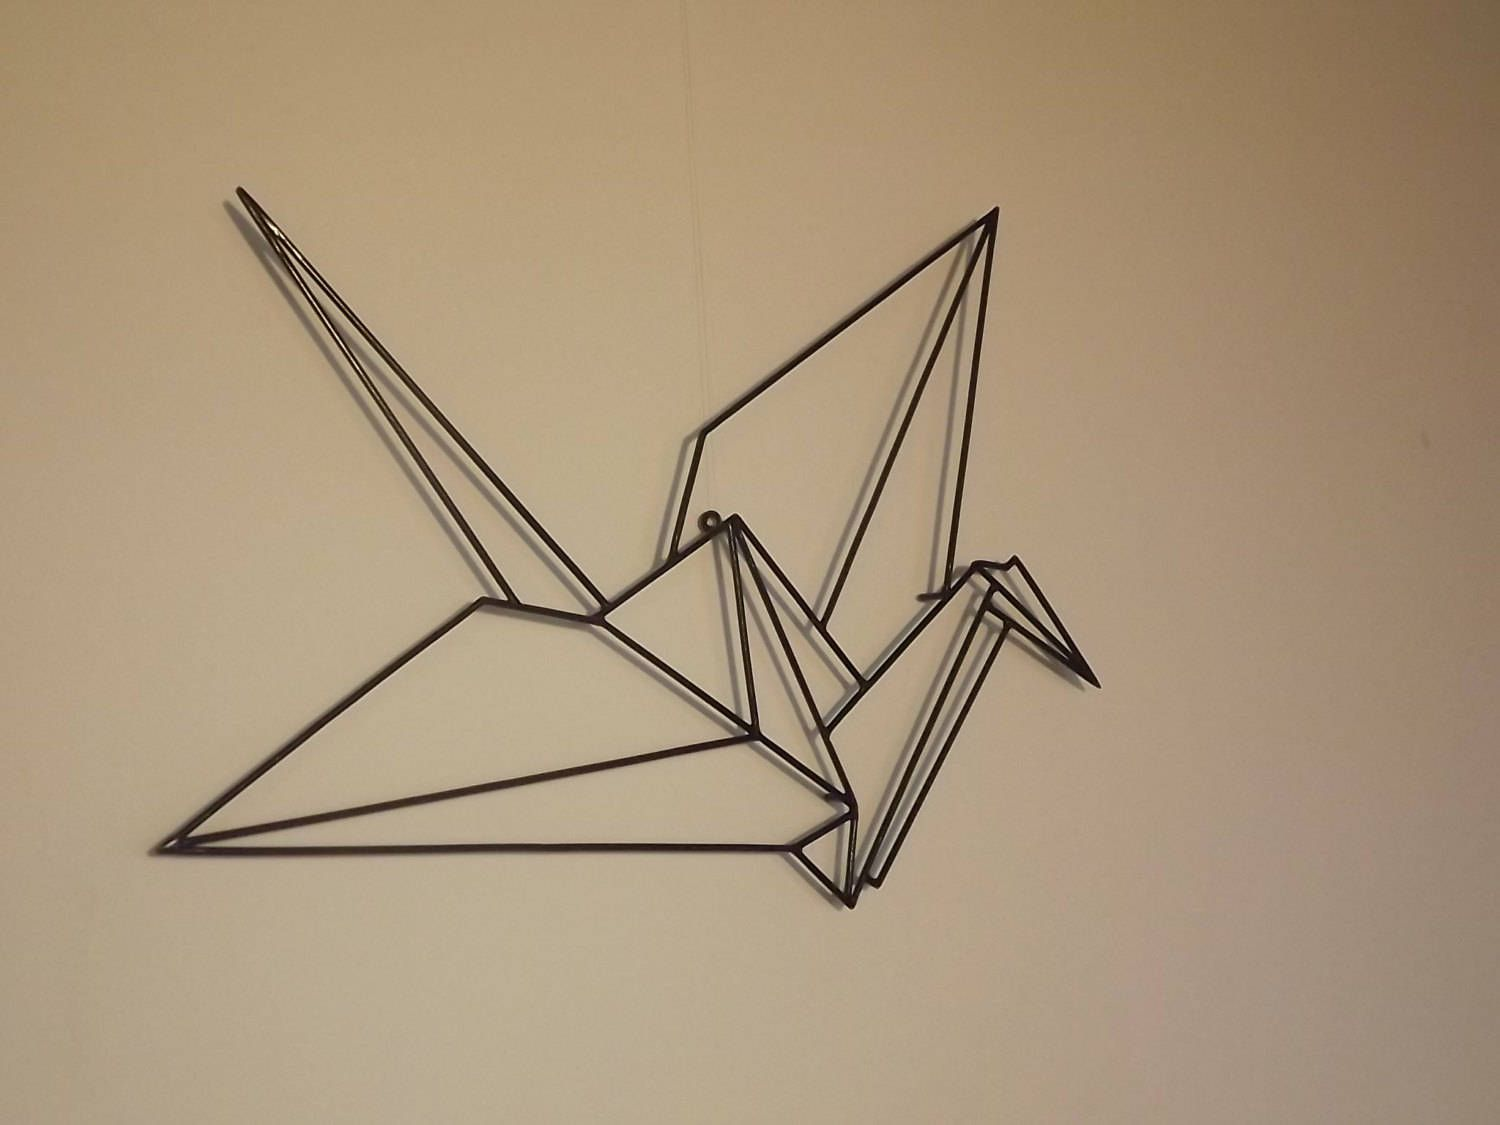 1500x1125 FREE SHIPING Origami Crane Japanese Wall Sculpture